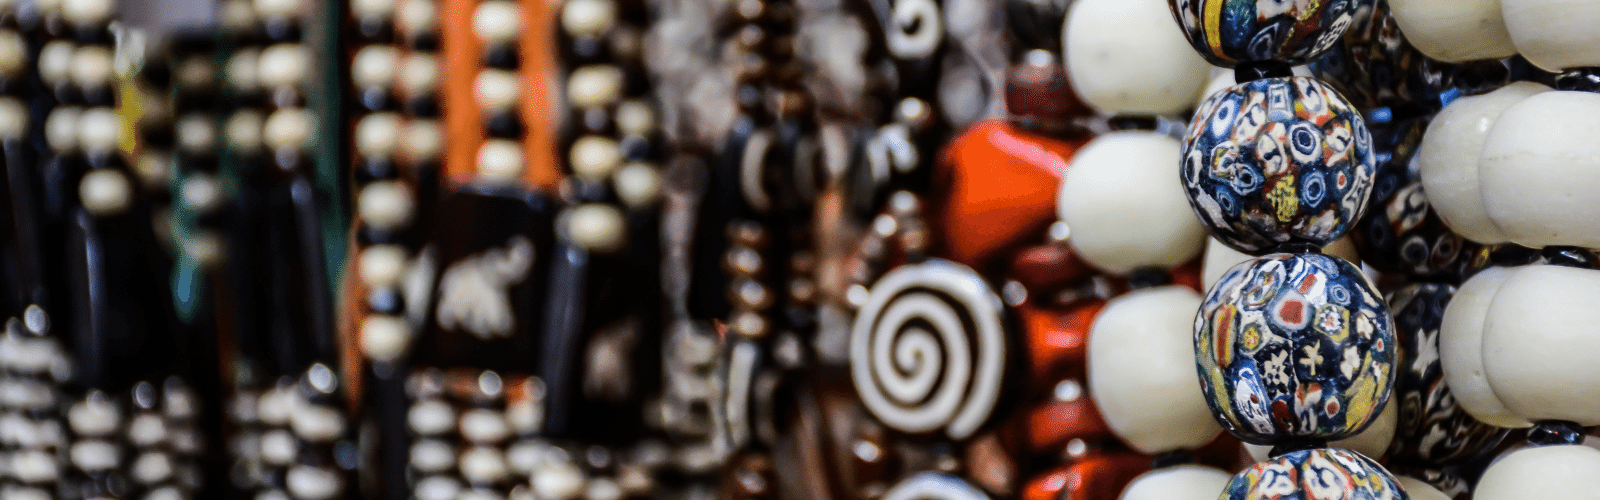 African Meraki - African Gifts - Beads, Necklaces & Bracelets